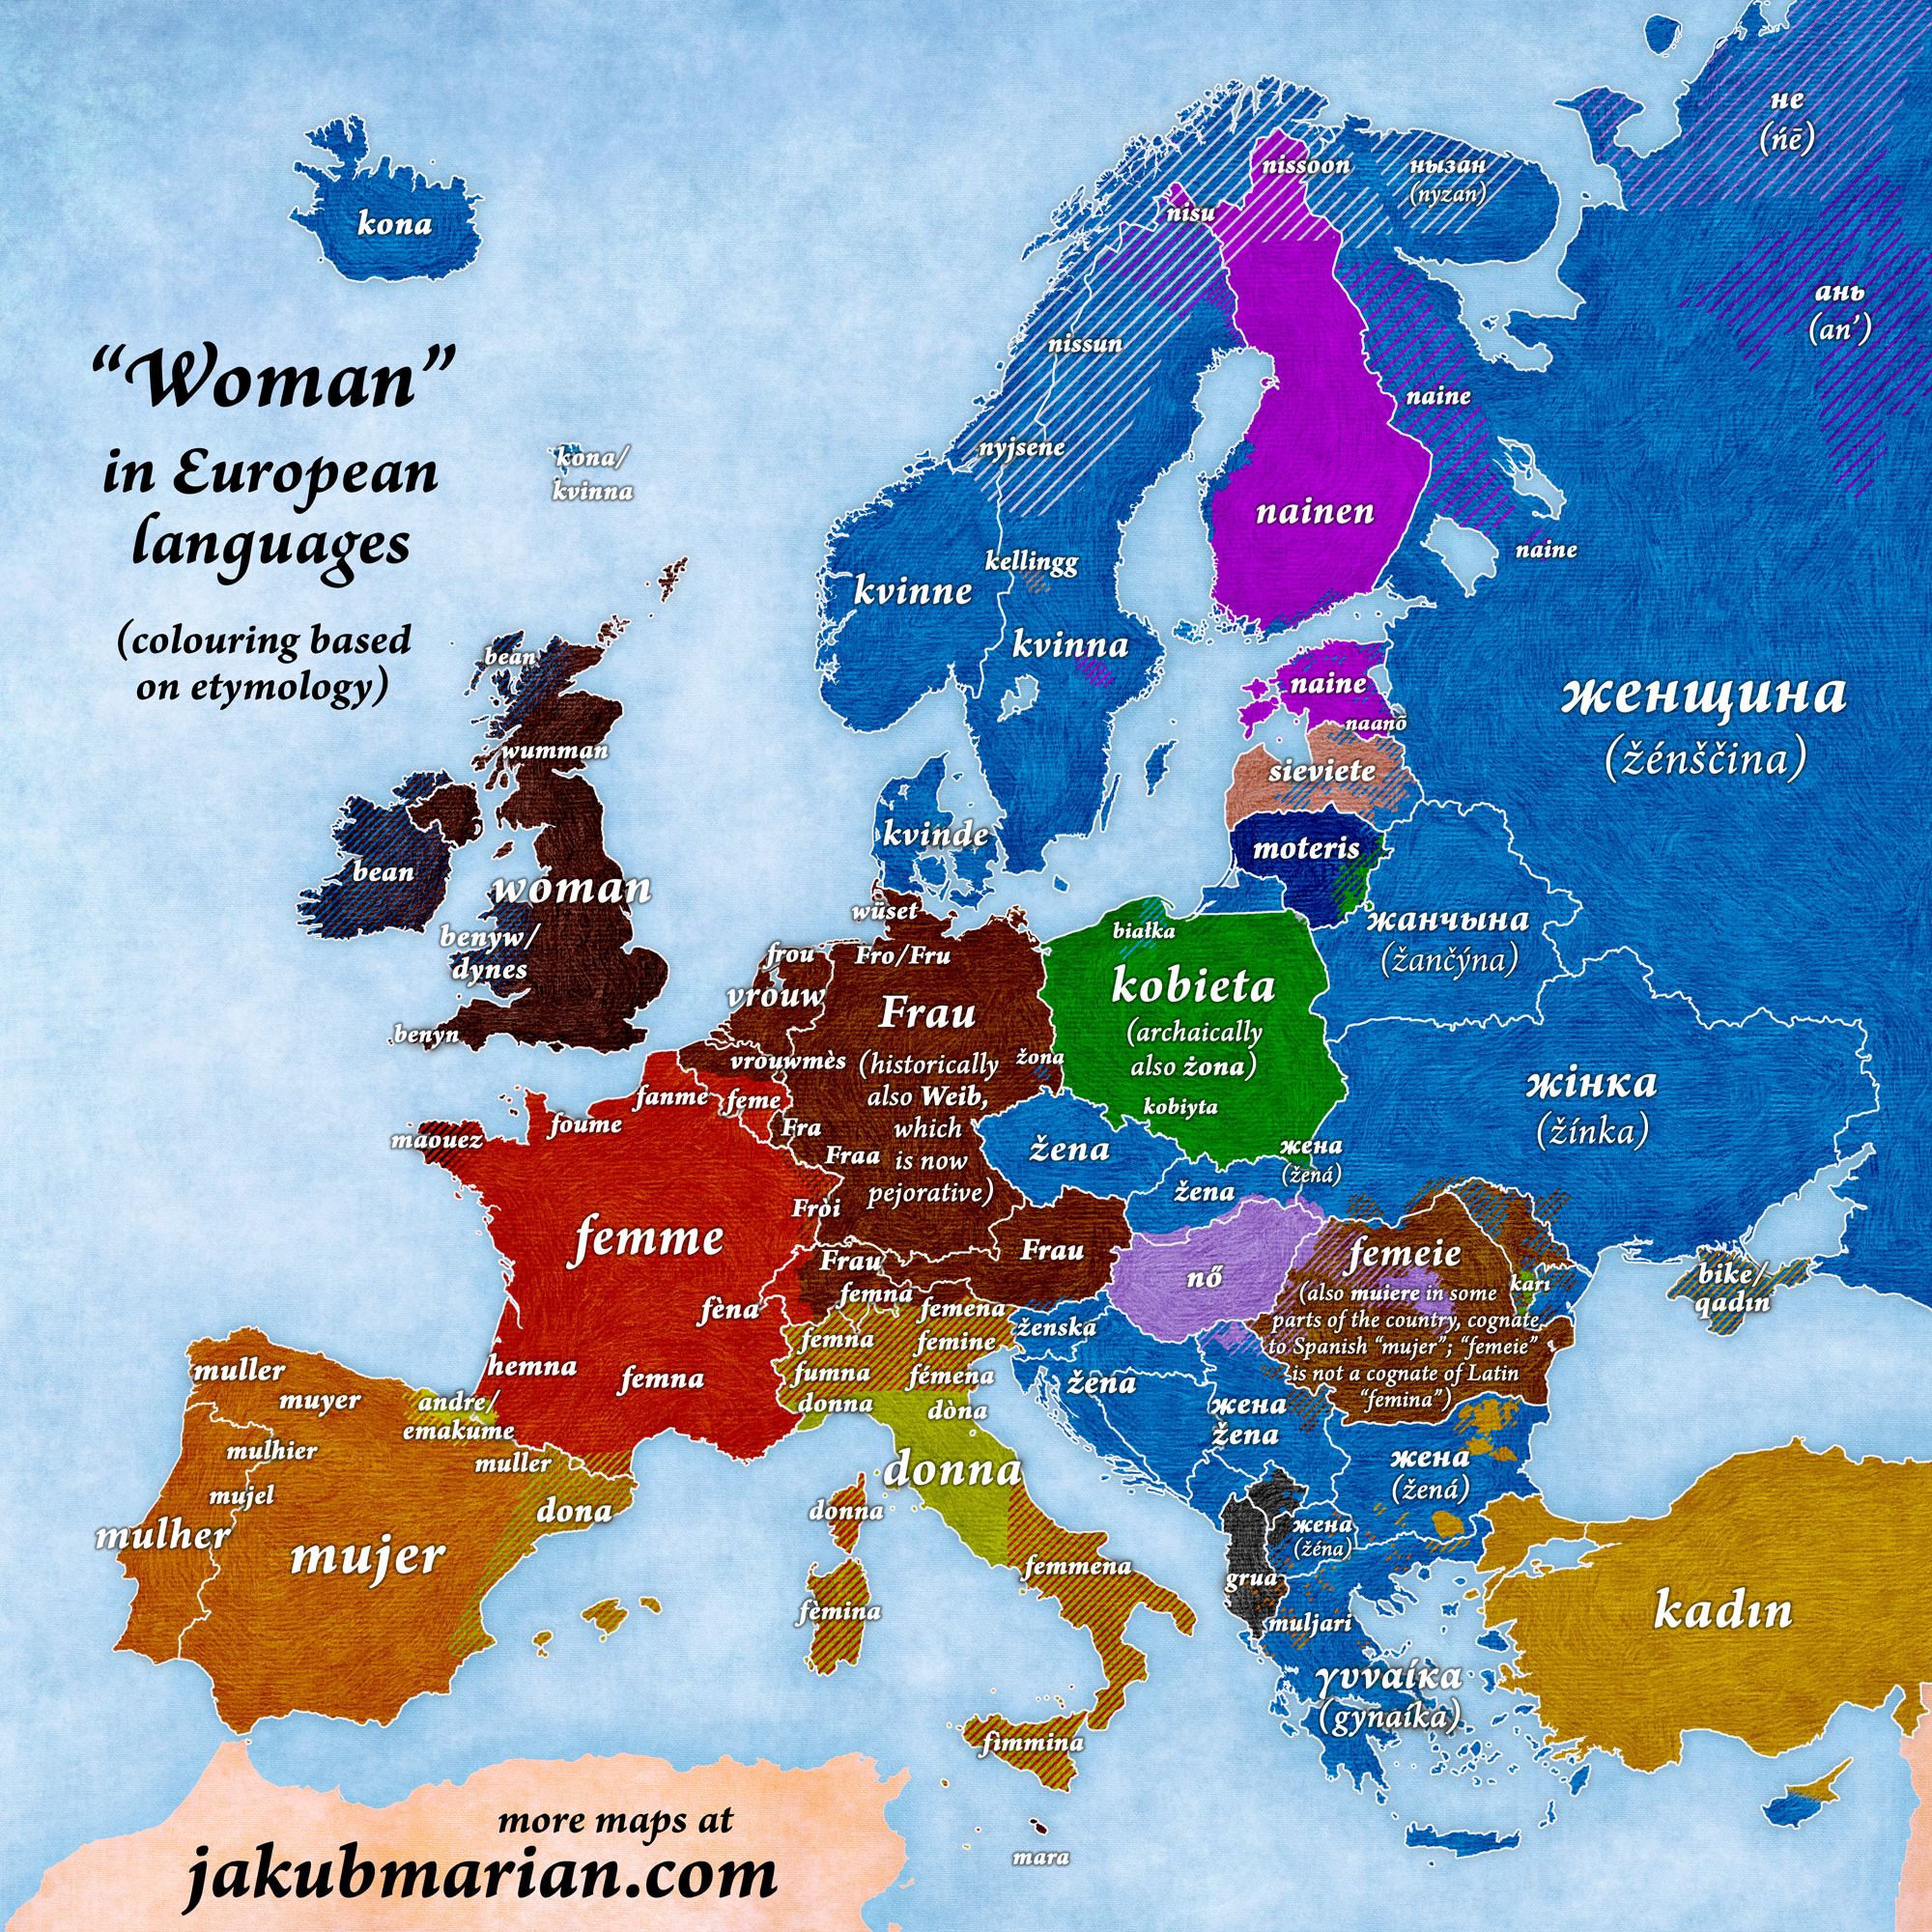 Woman in European languages